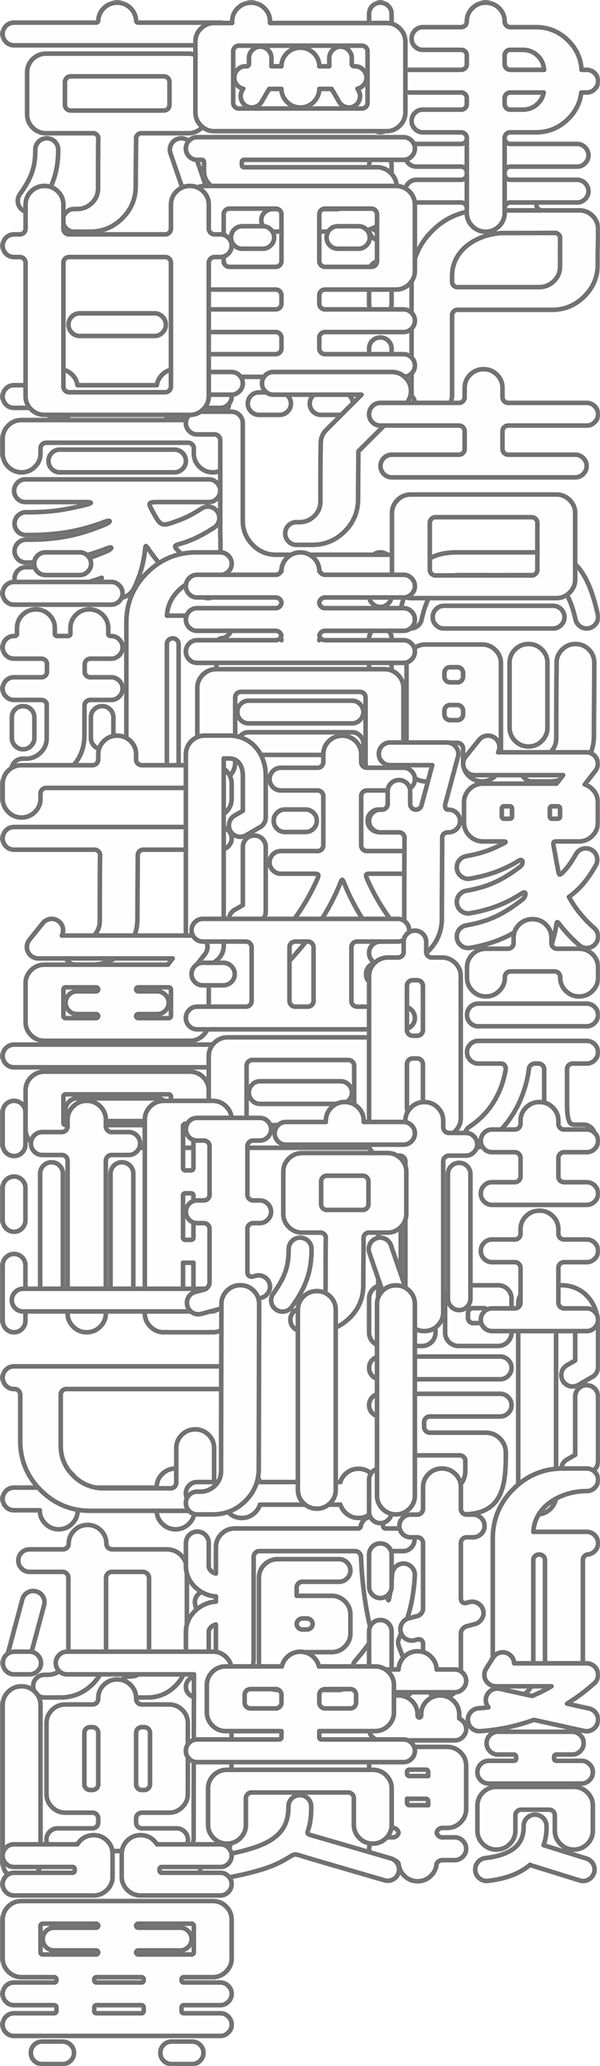 Province 省份缩写 by socean yang, via Behance